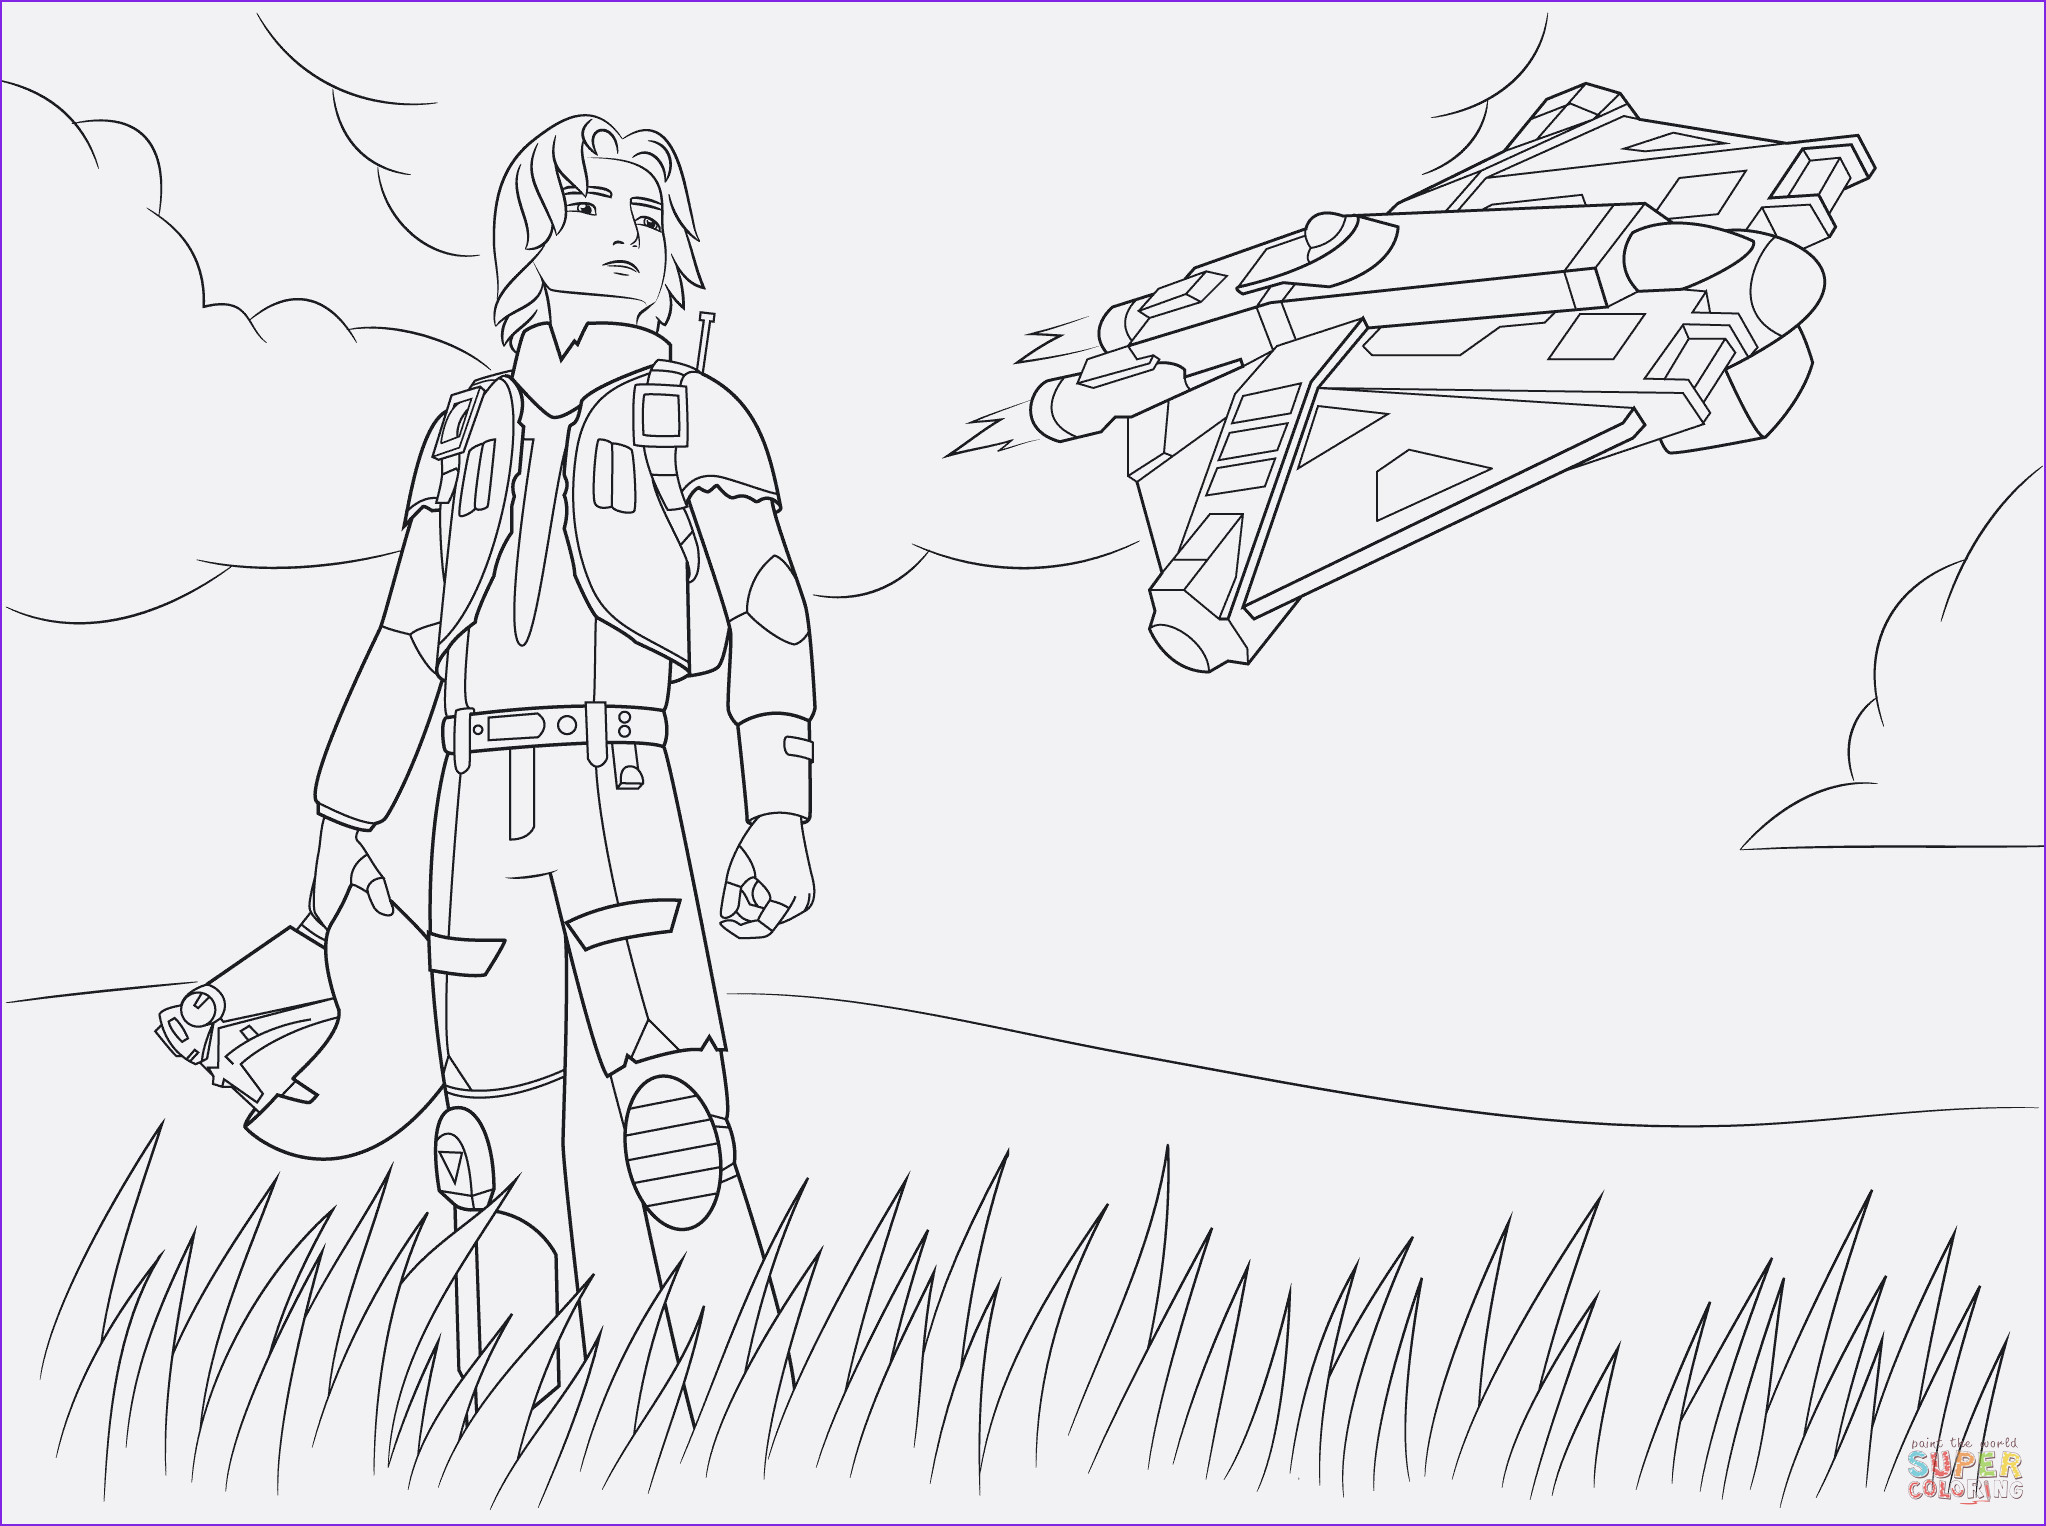 Darth Vader Ausmalbilder Das Beste Von Printable Darth Vader Coloring Pages Fresh 42 Ausmalbilder Star Wars Bilder